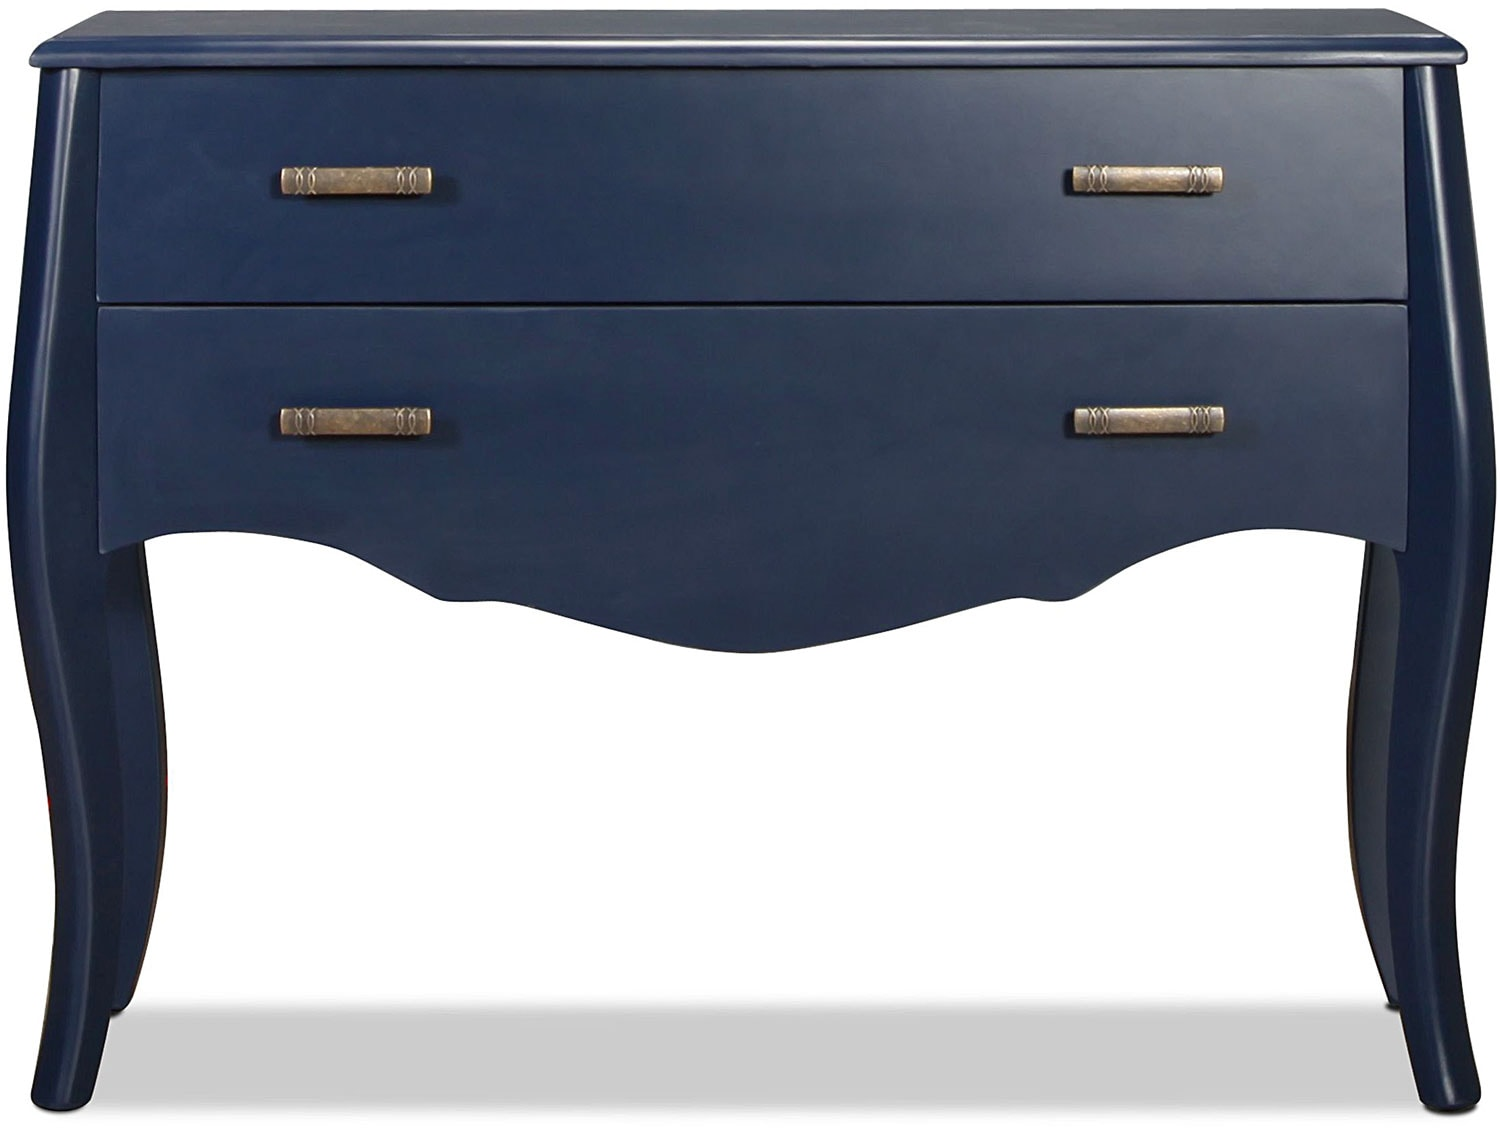 Moe Accent Table - Indigo Blue